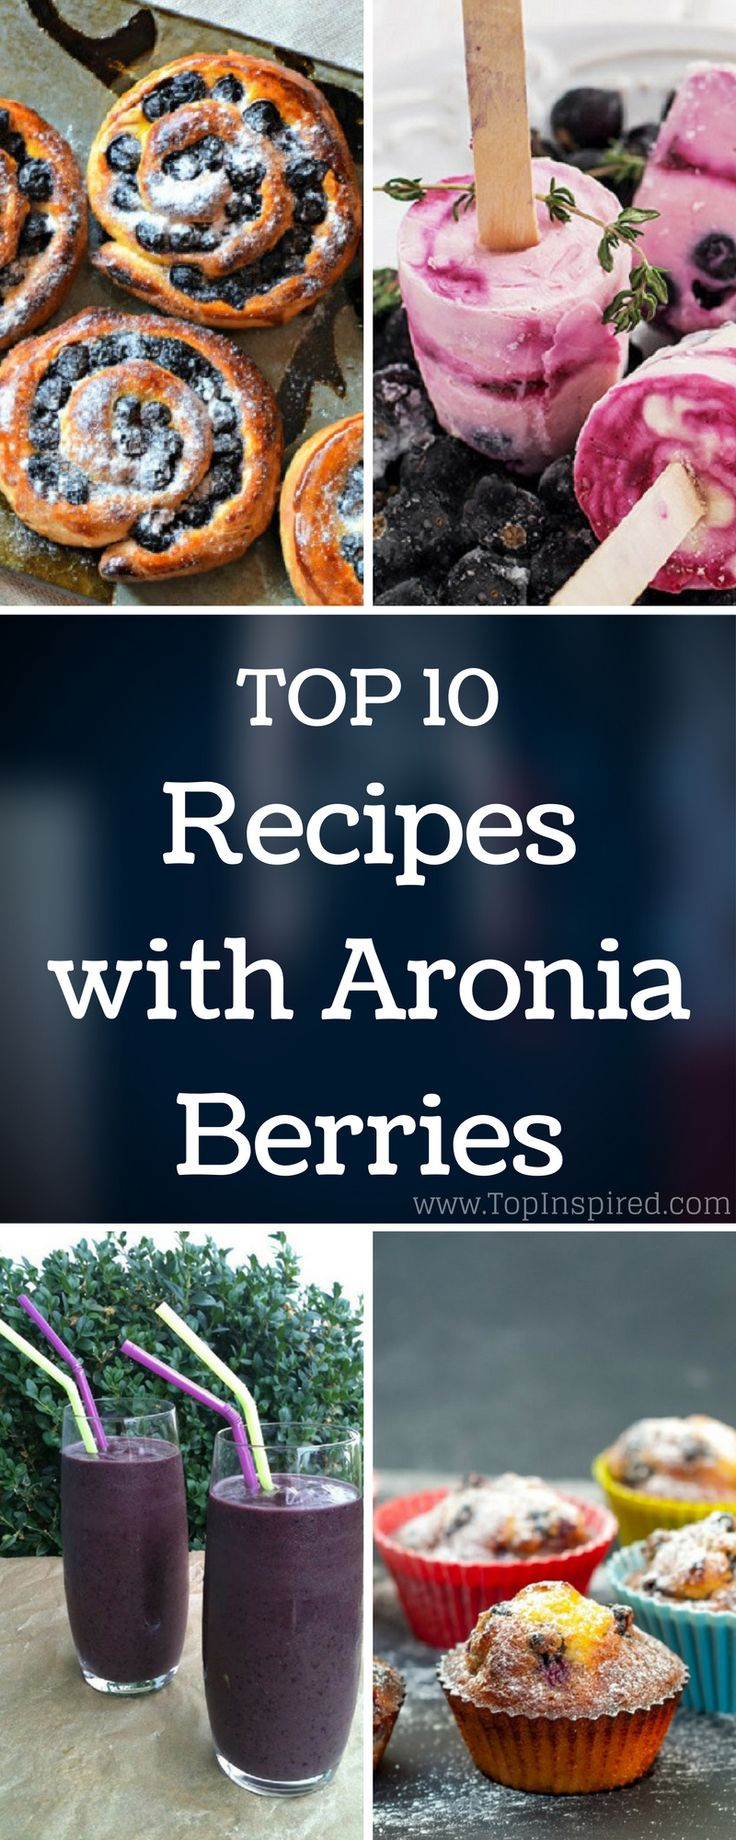 Due to its long list of health benefits, aronia berry well deserve being labelled a superfood. #aronia  via @Topinspired